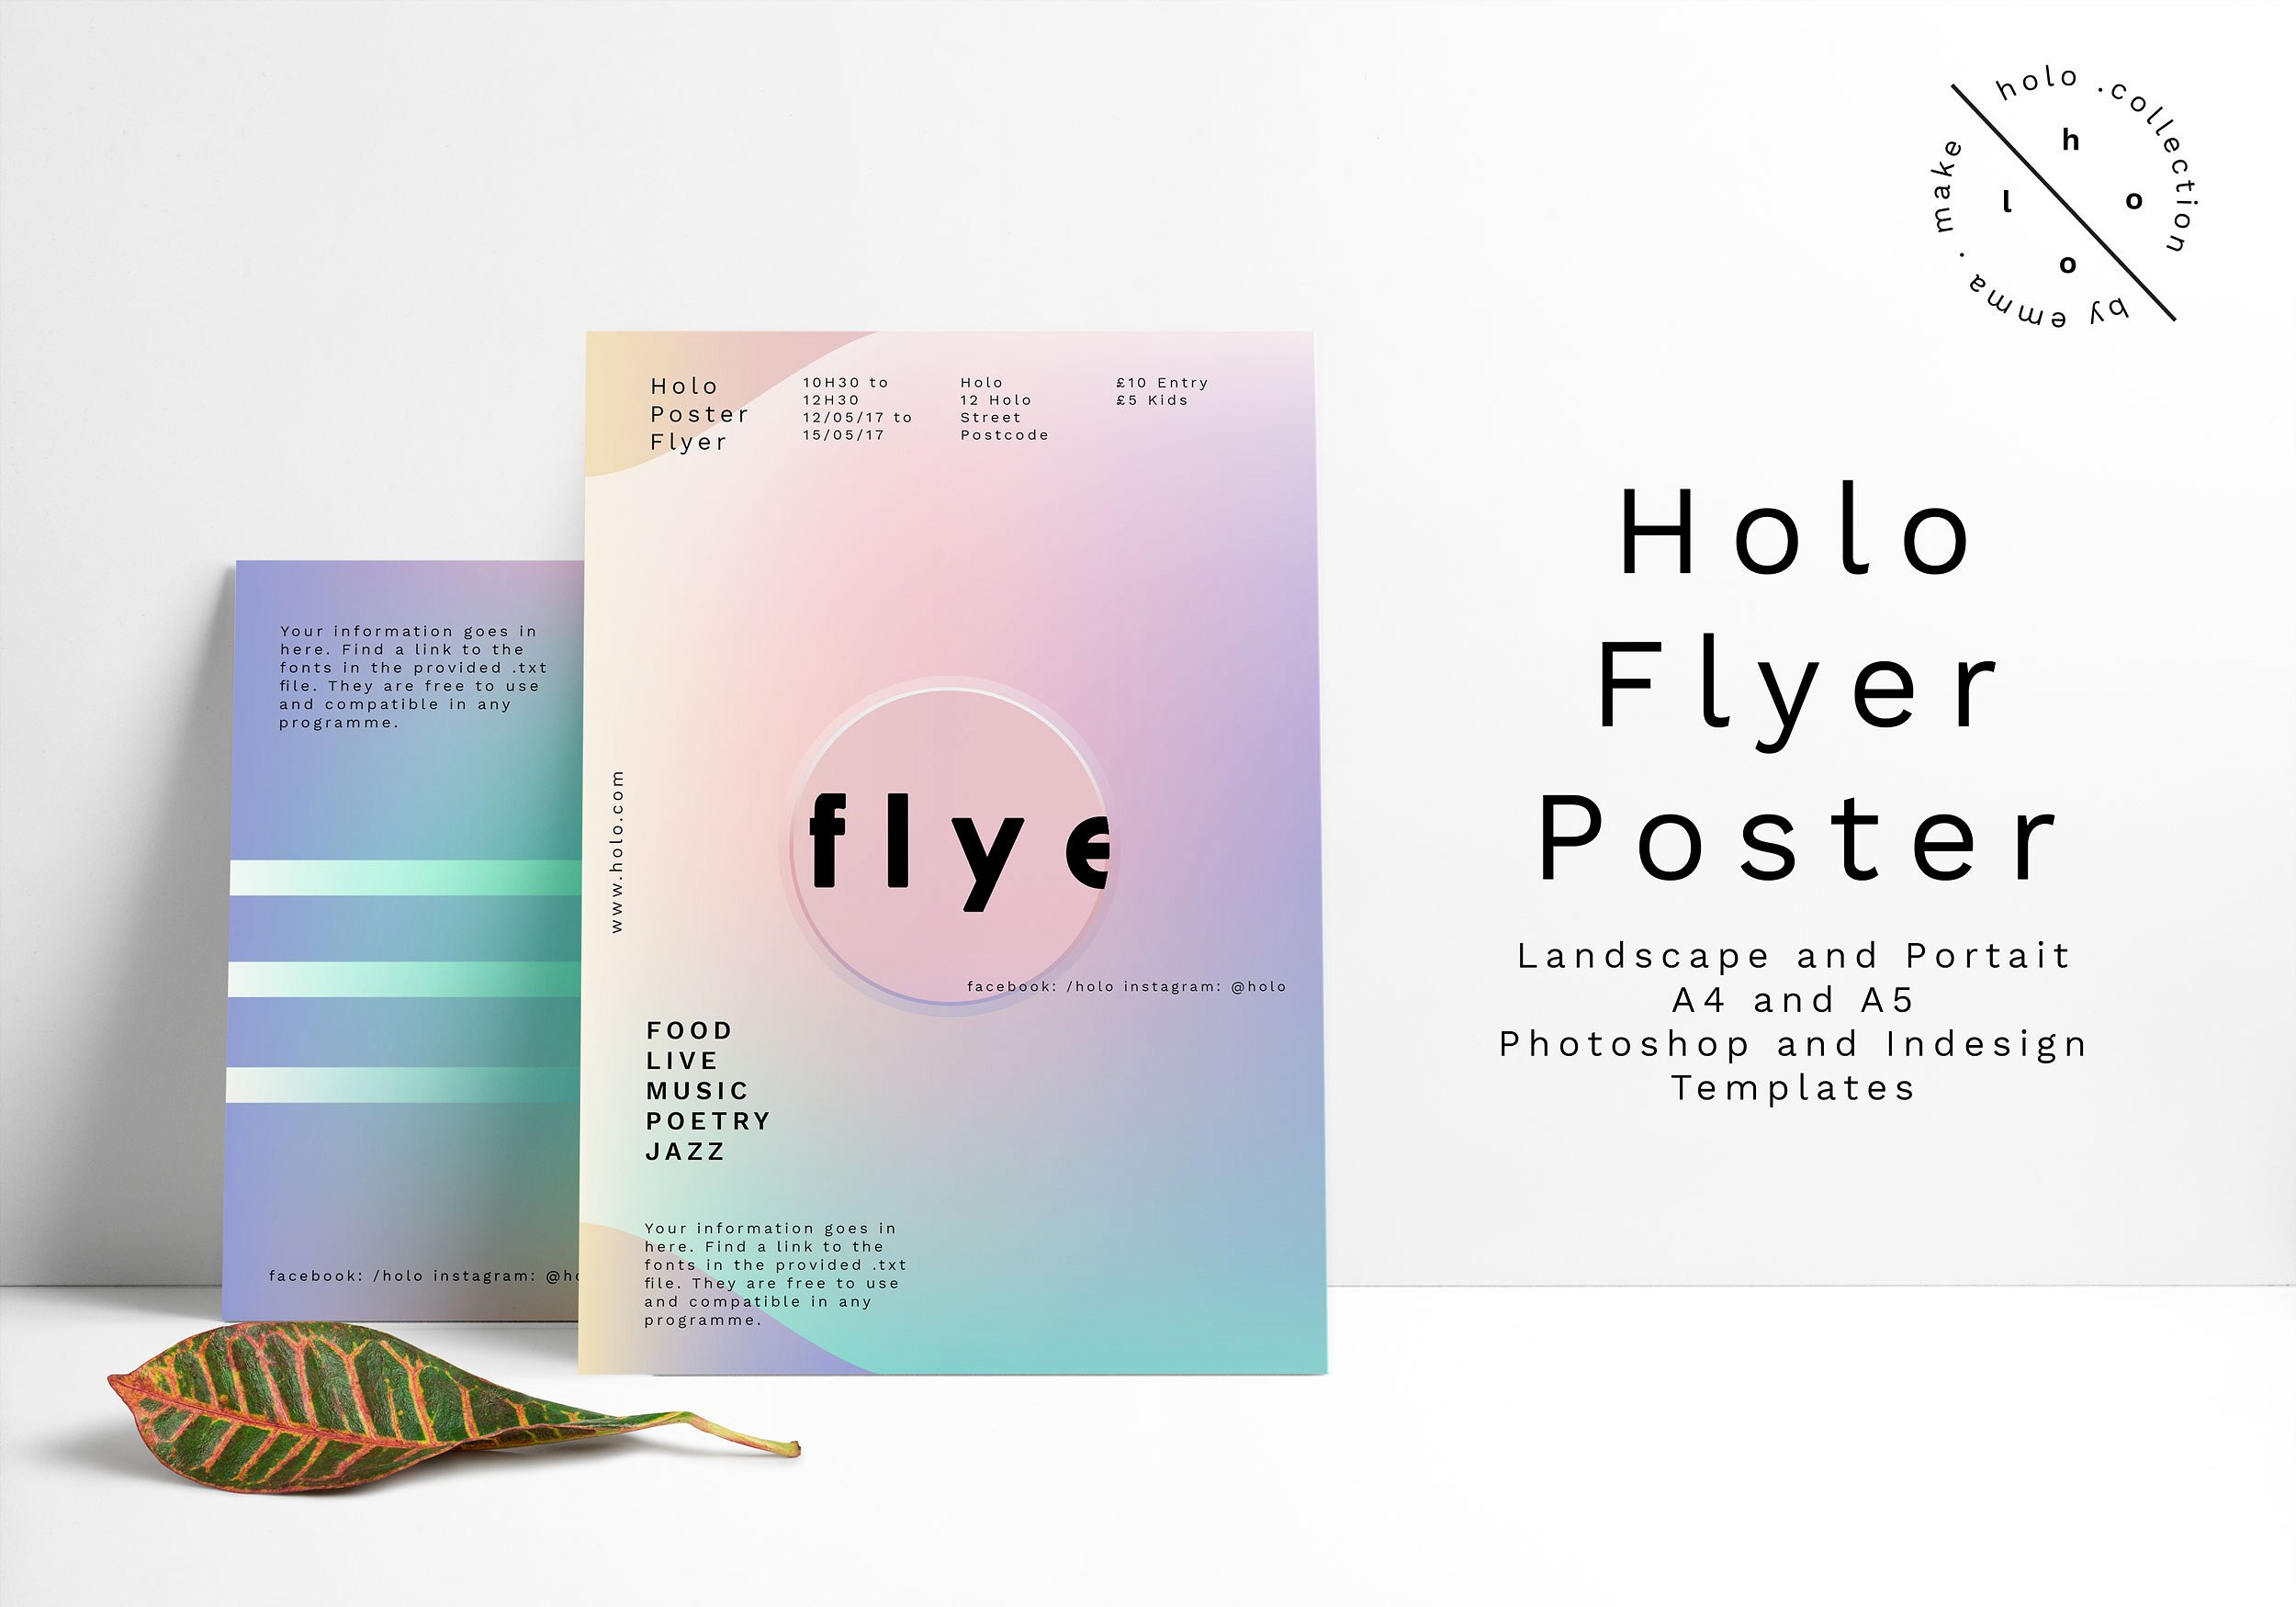 holo flyer event poster example